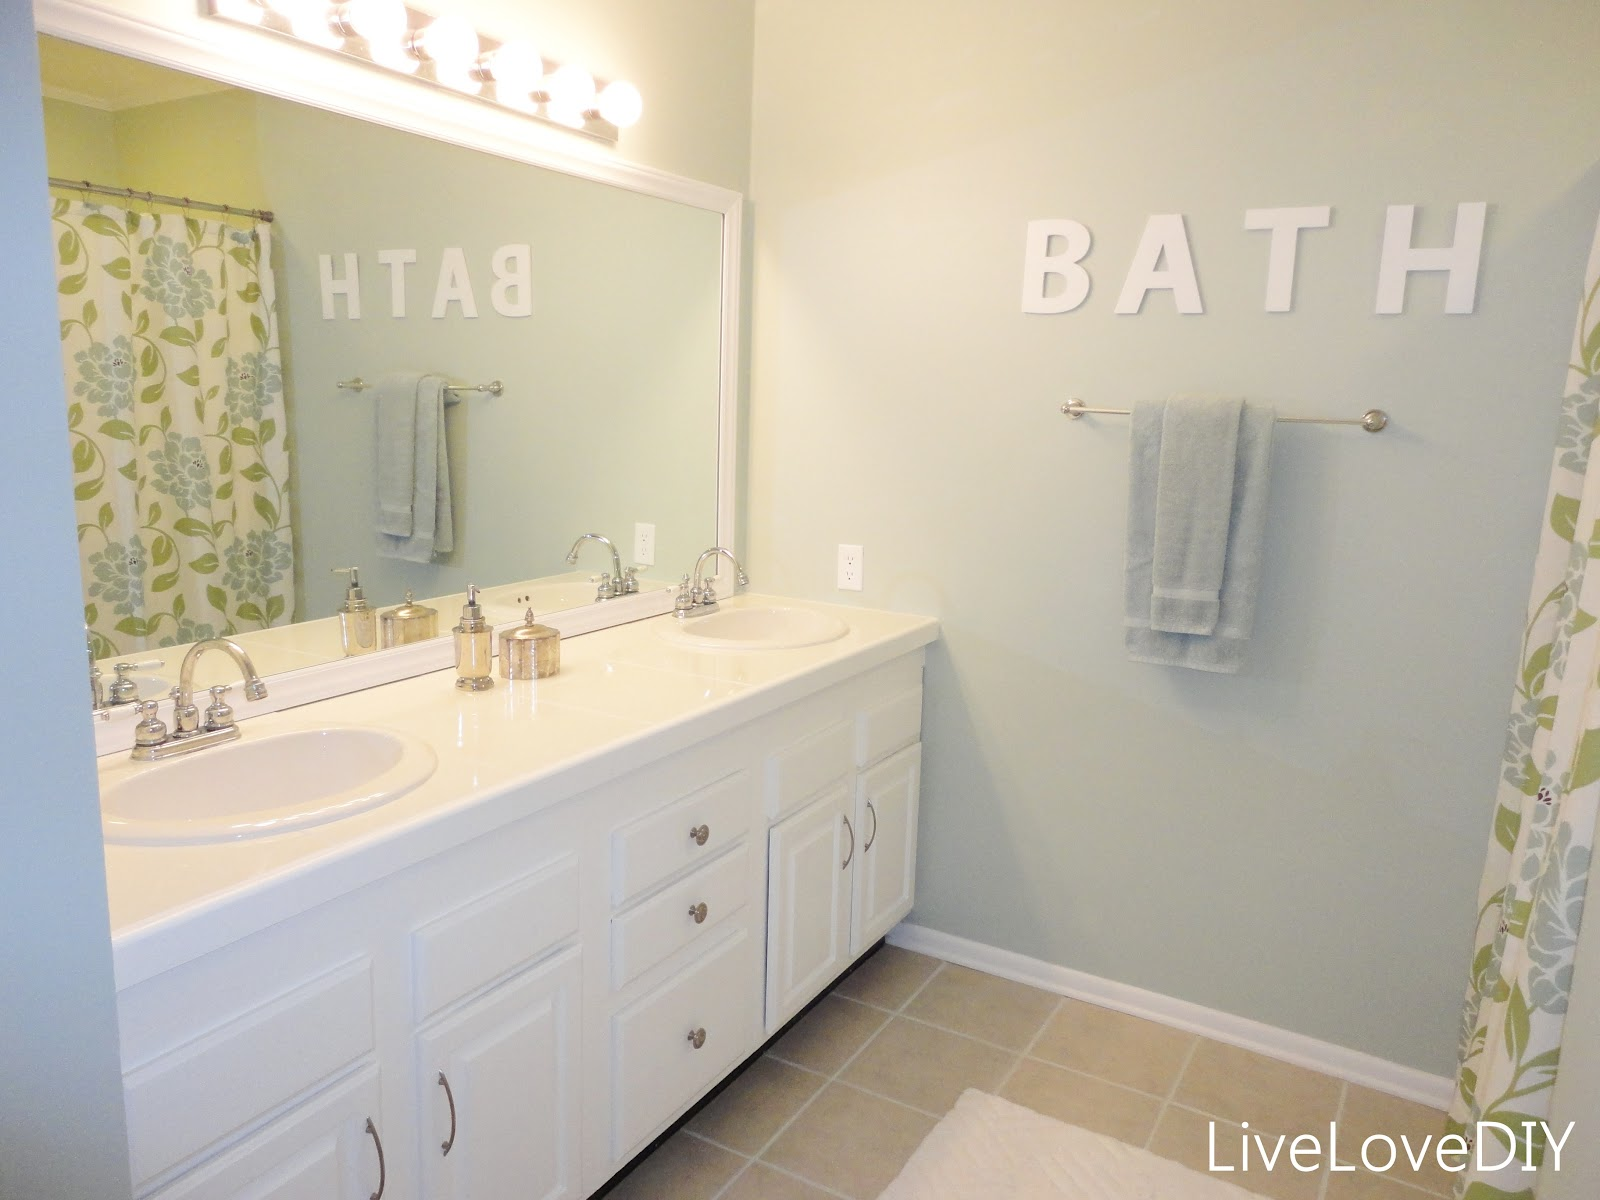 Easy Diy Ideas For Updating Older Bathrooms So Many Great Including How To Paint